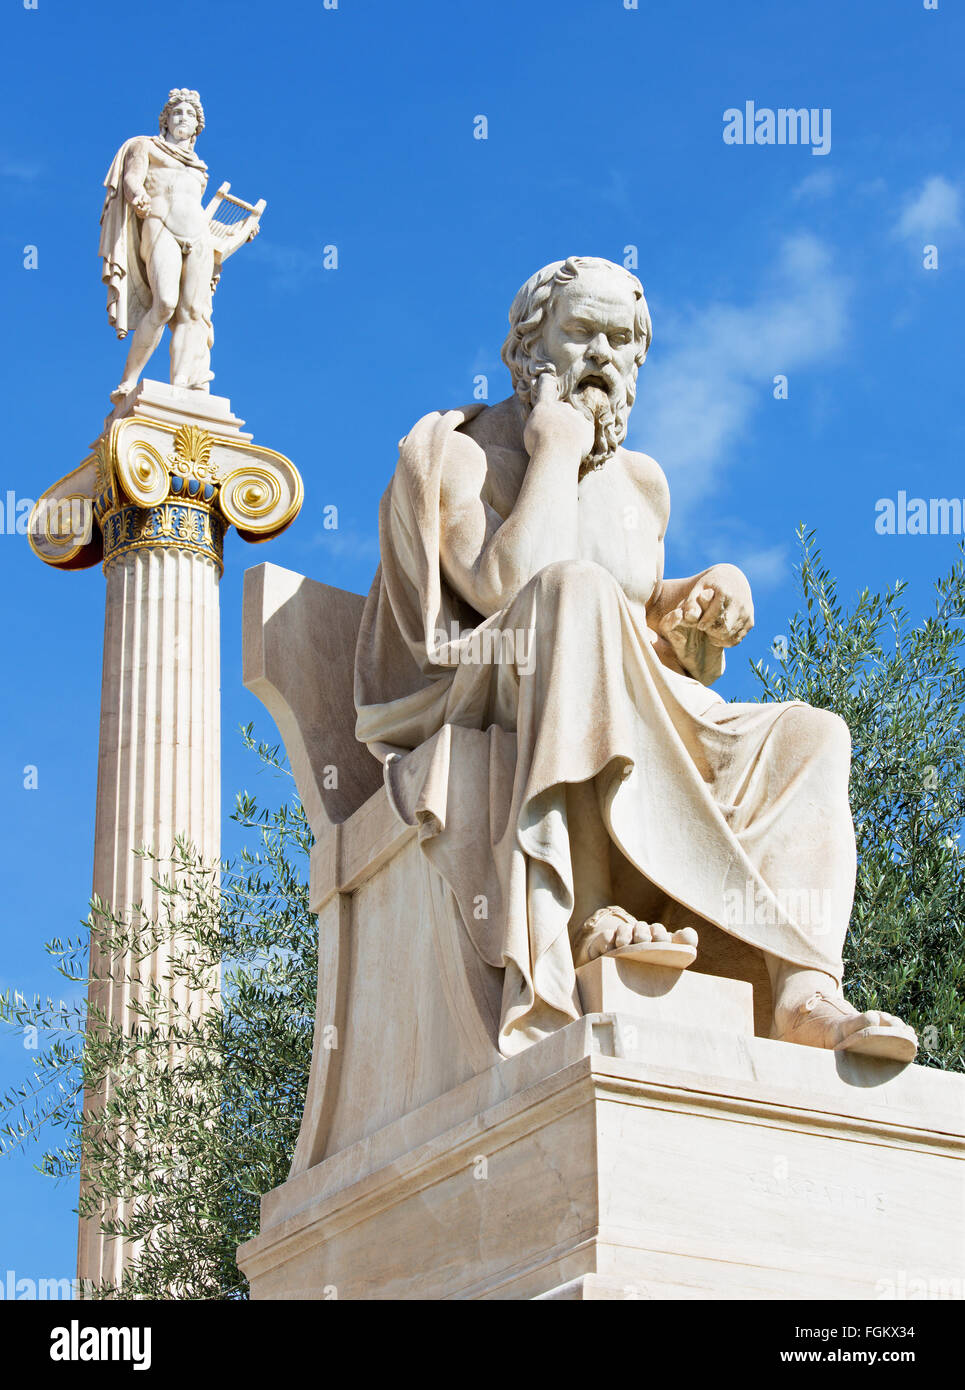 Athens - The statue of Socrates in front of National Academy building by the Italian sculptor Piccarelli (from 19. - Stock Image